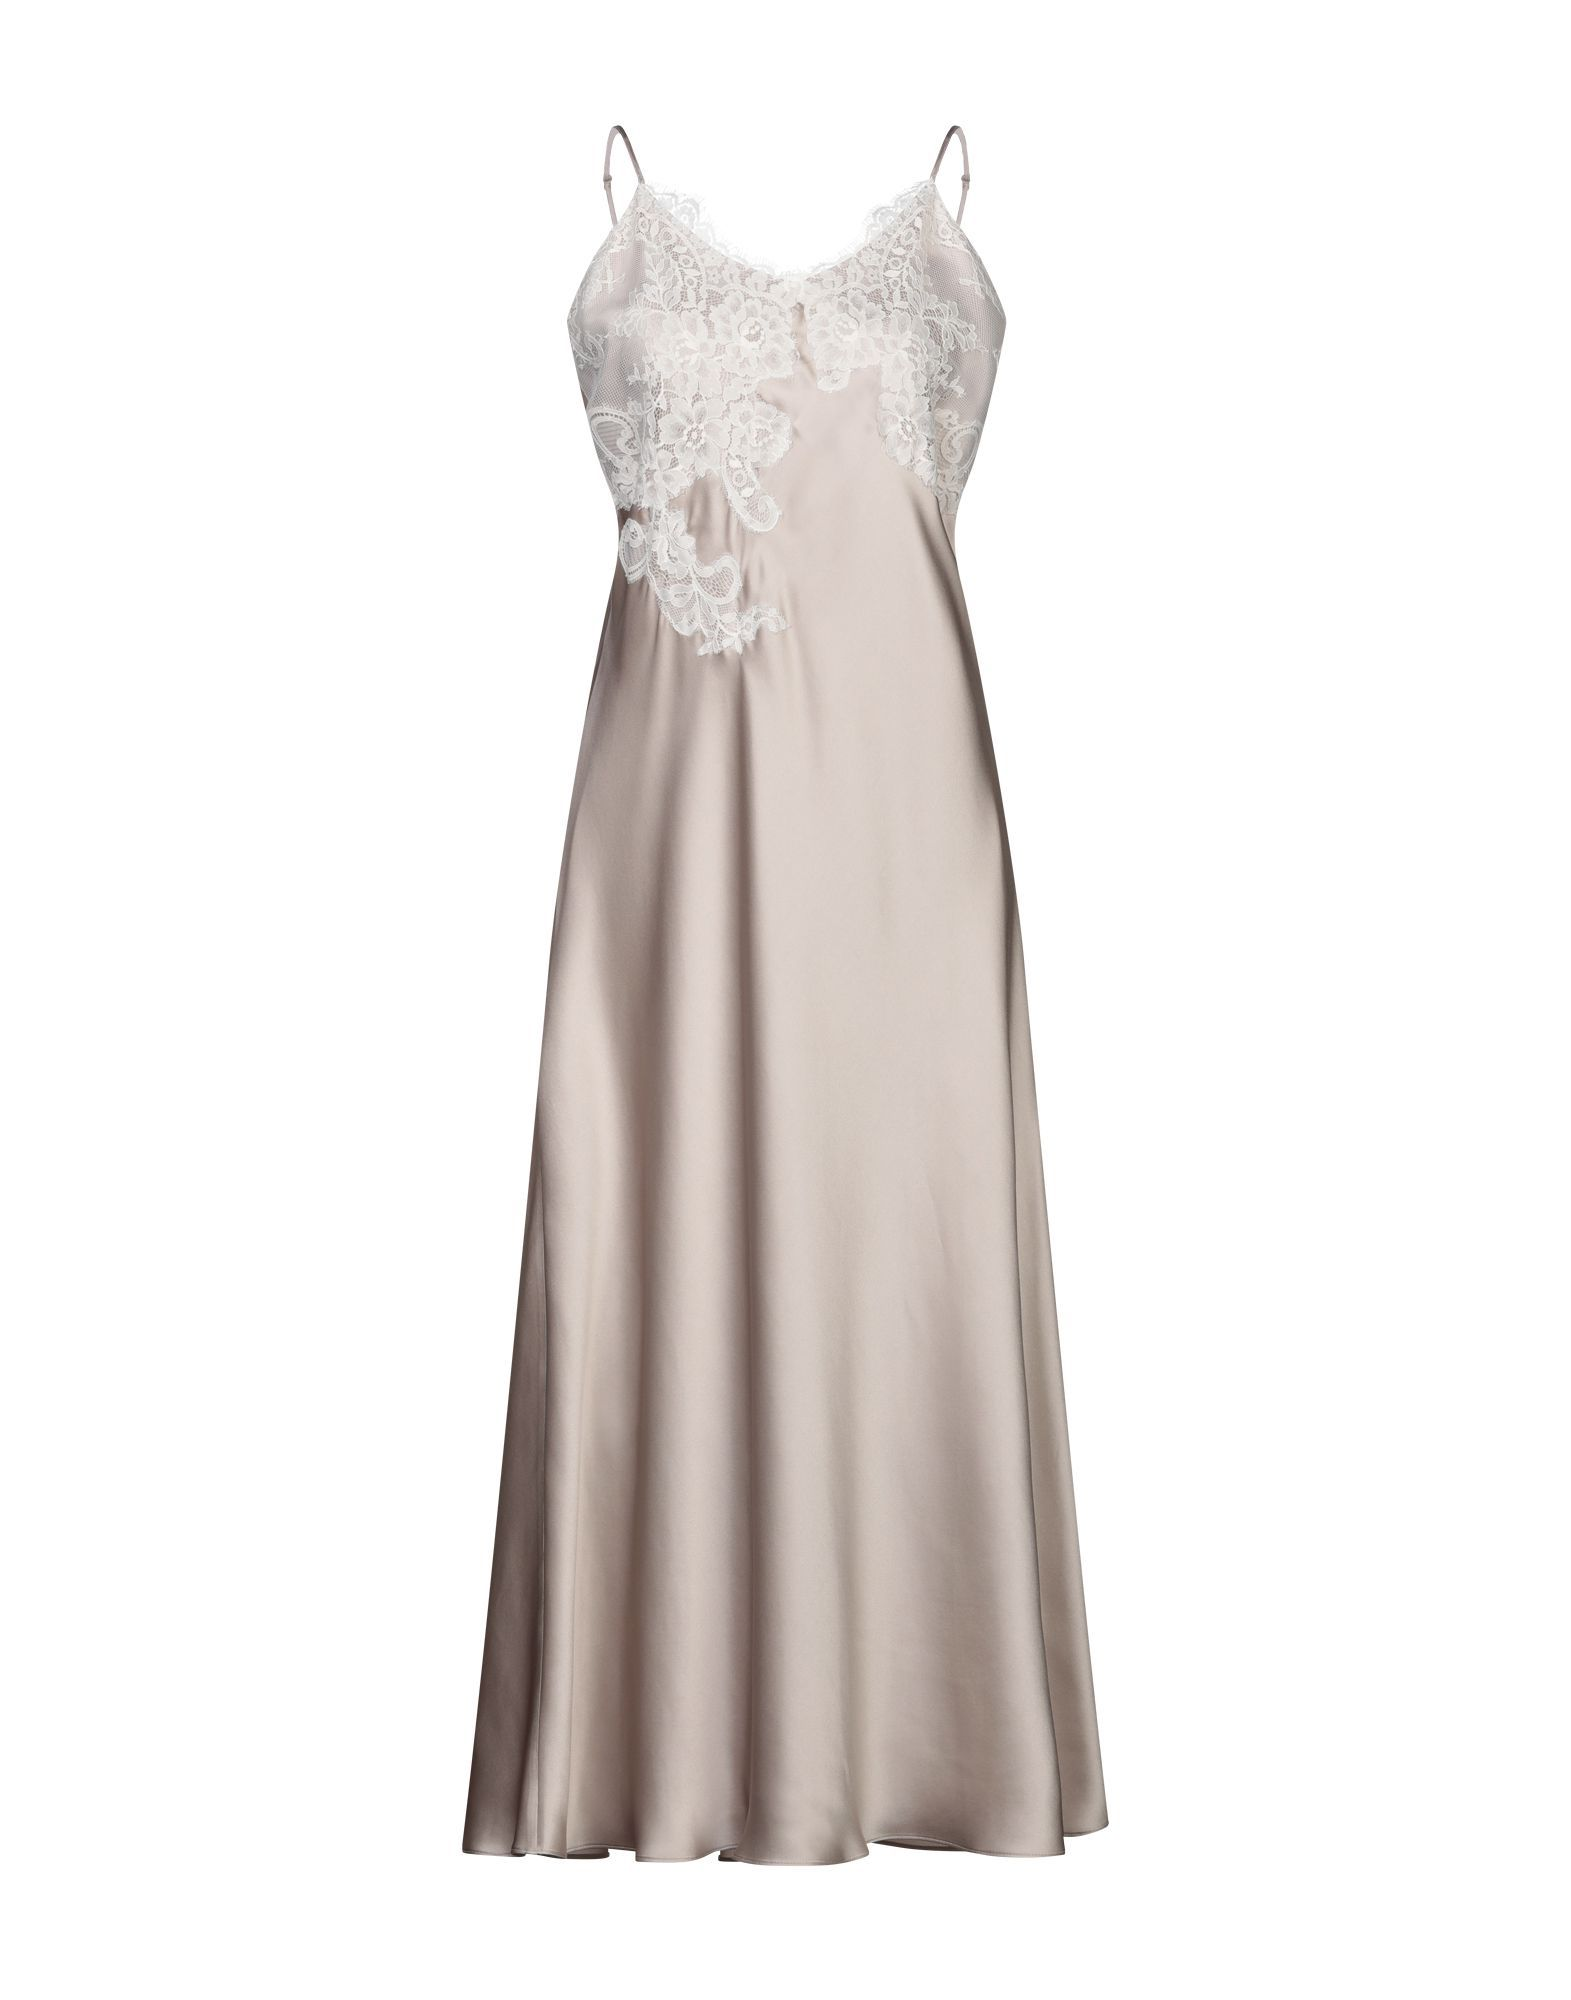 Vivis Dove Grey Silk And Lace Full Length Nightdress